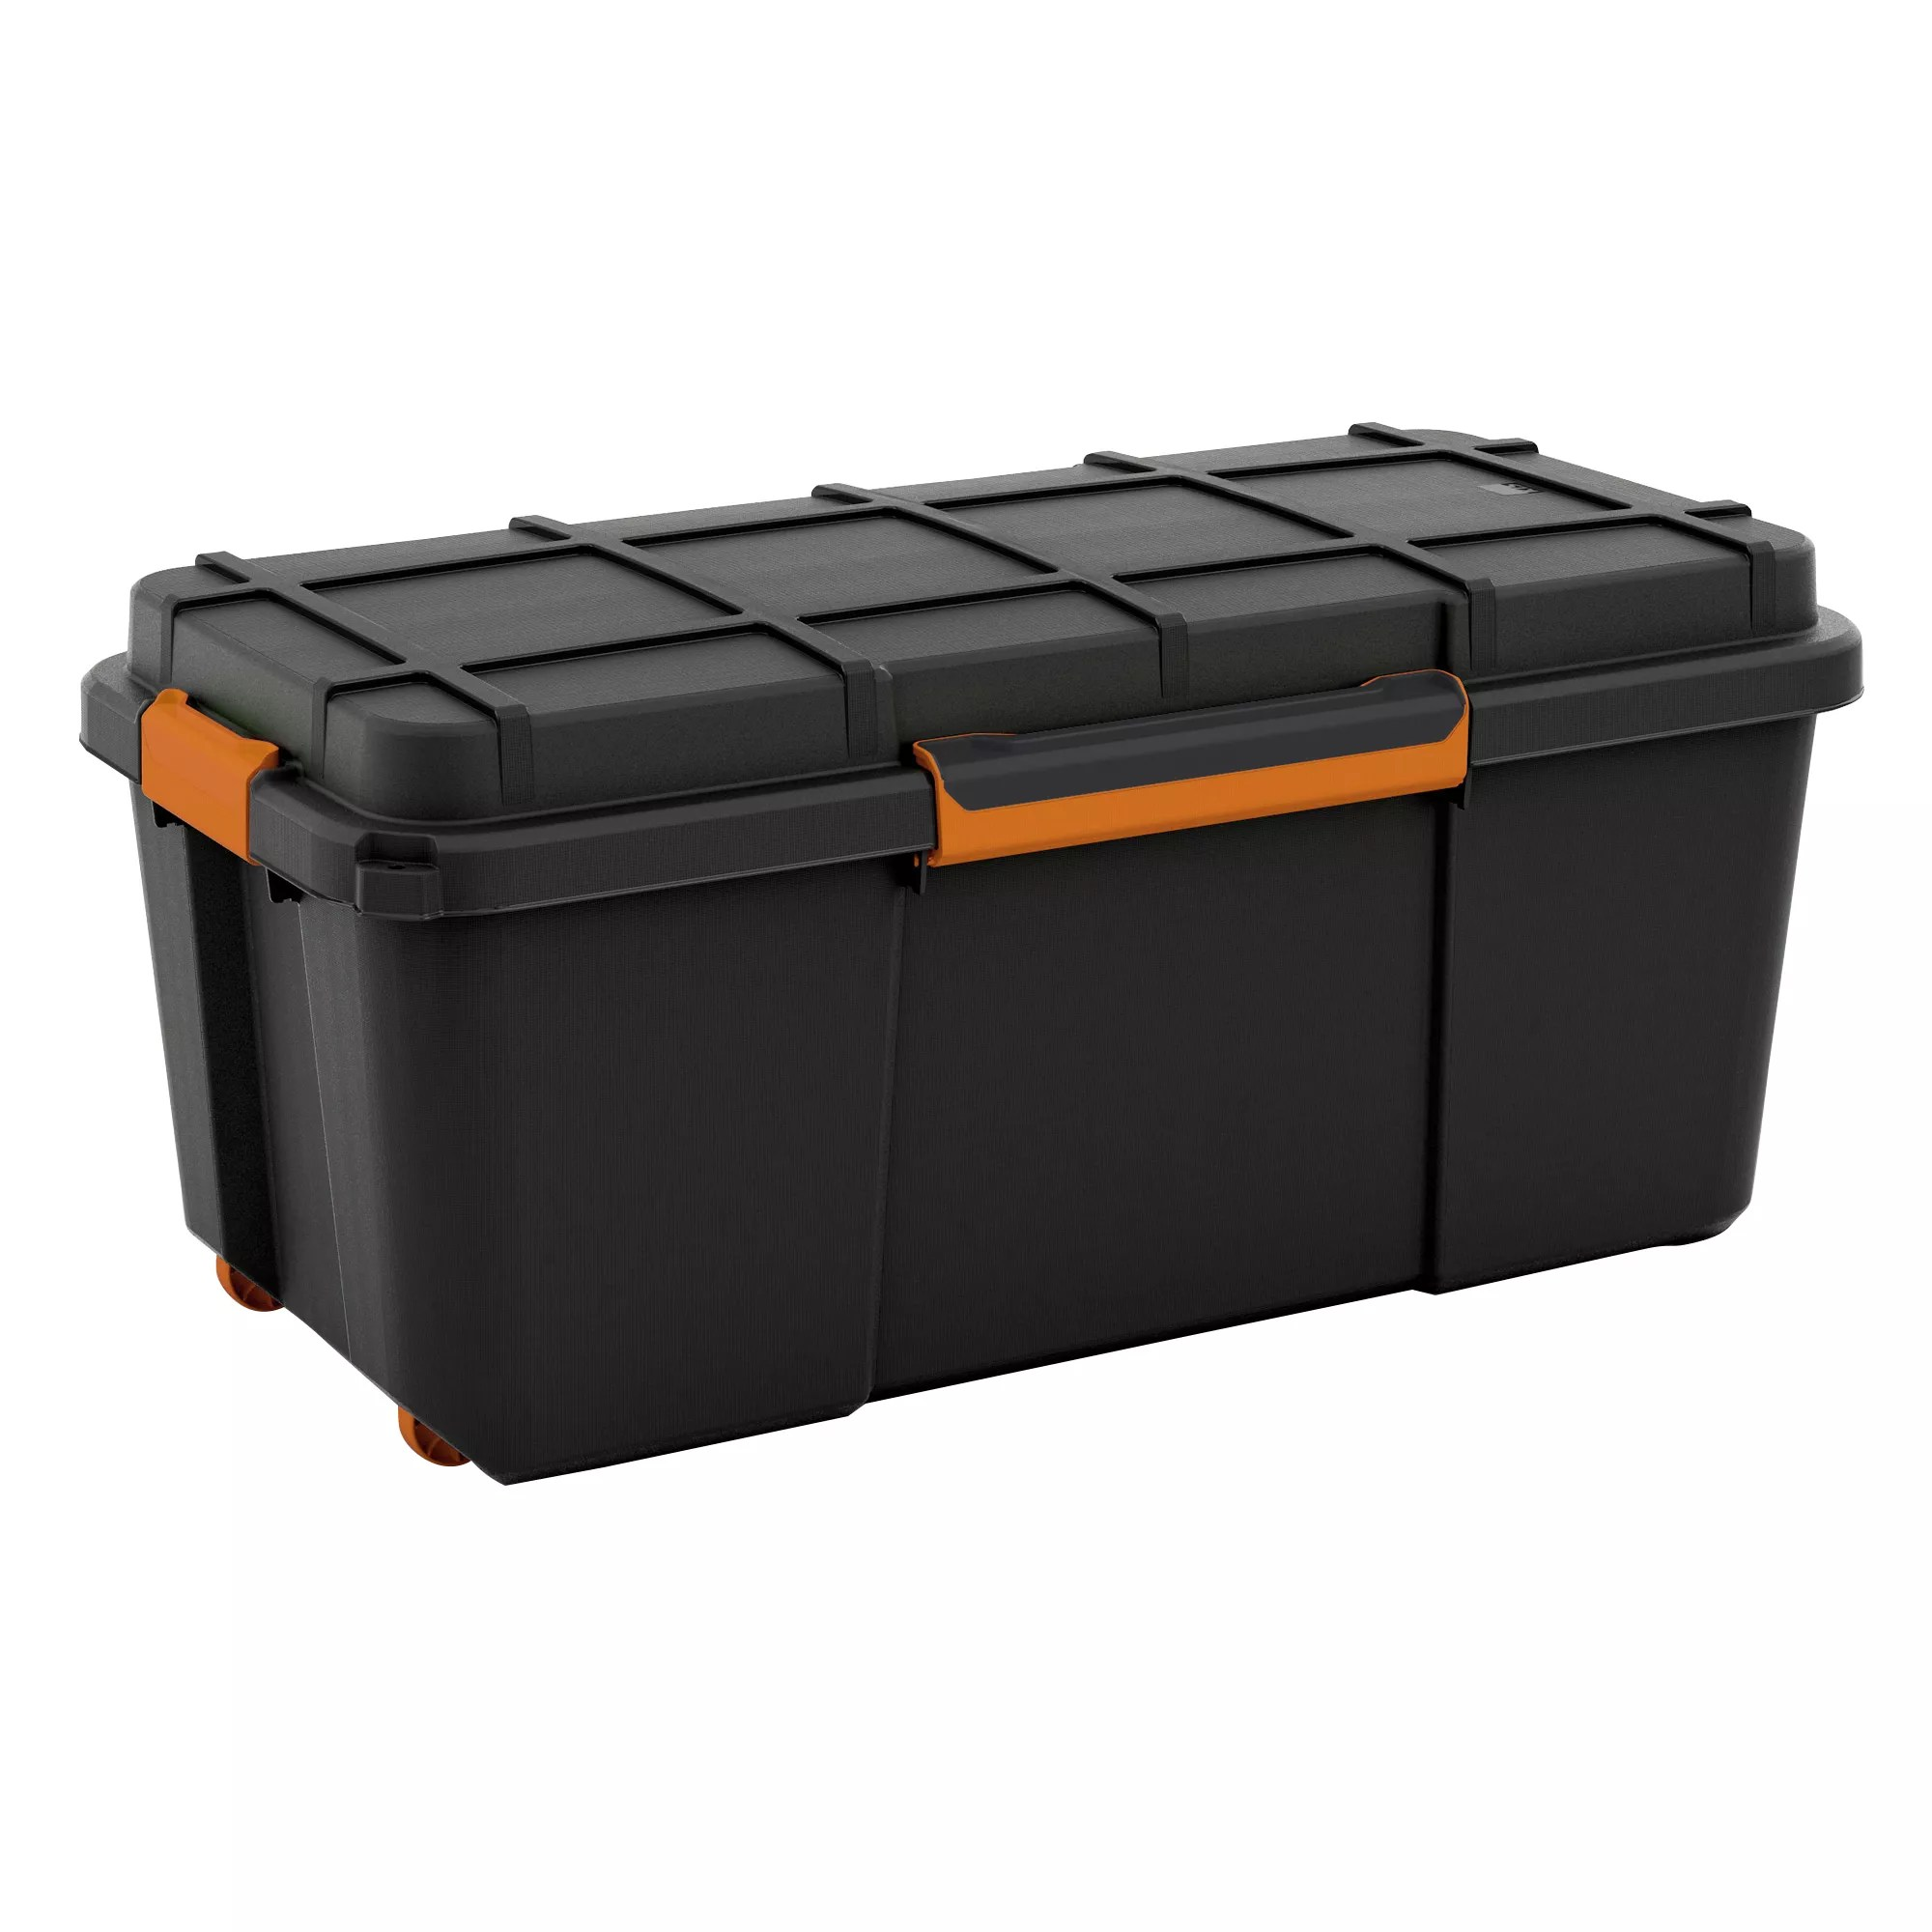 Large Plastic Storage Boxes Form Flexi Store Black Large 74l Plastic Waterproof